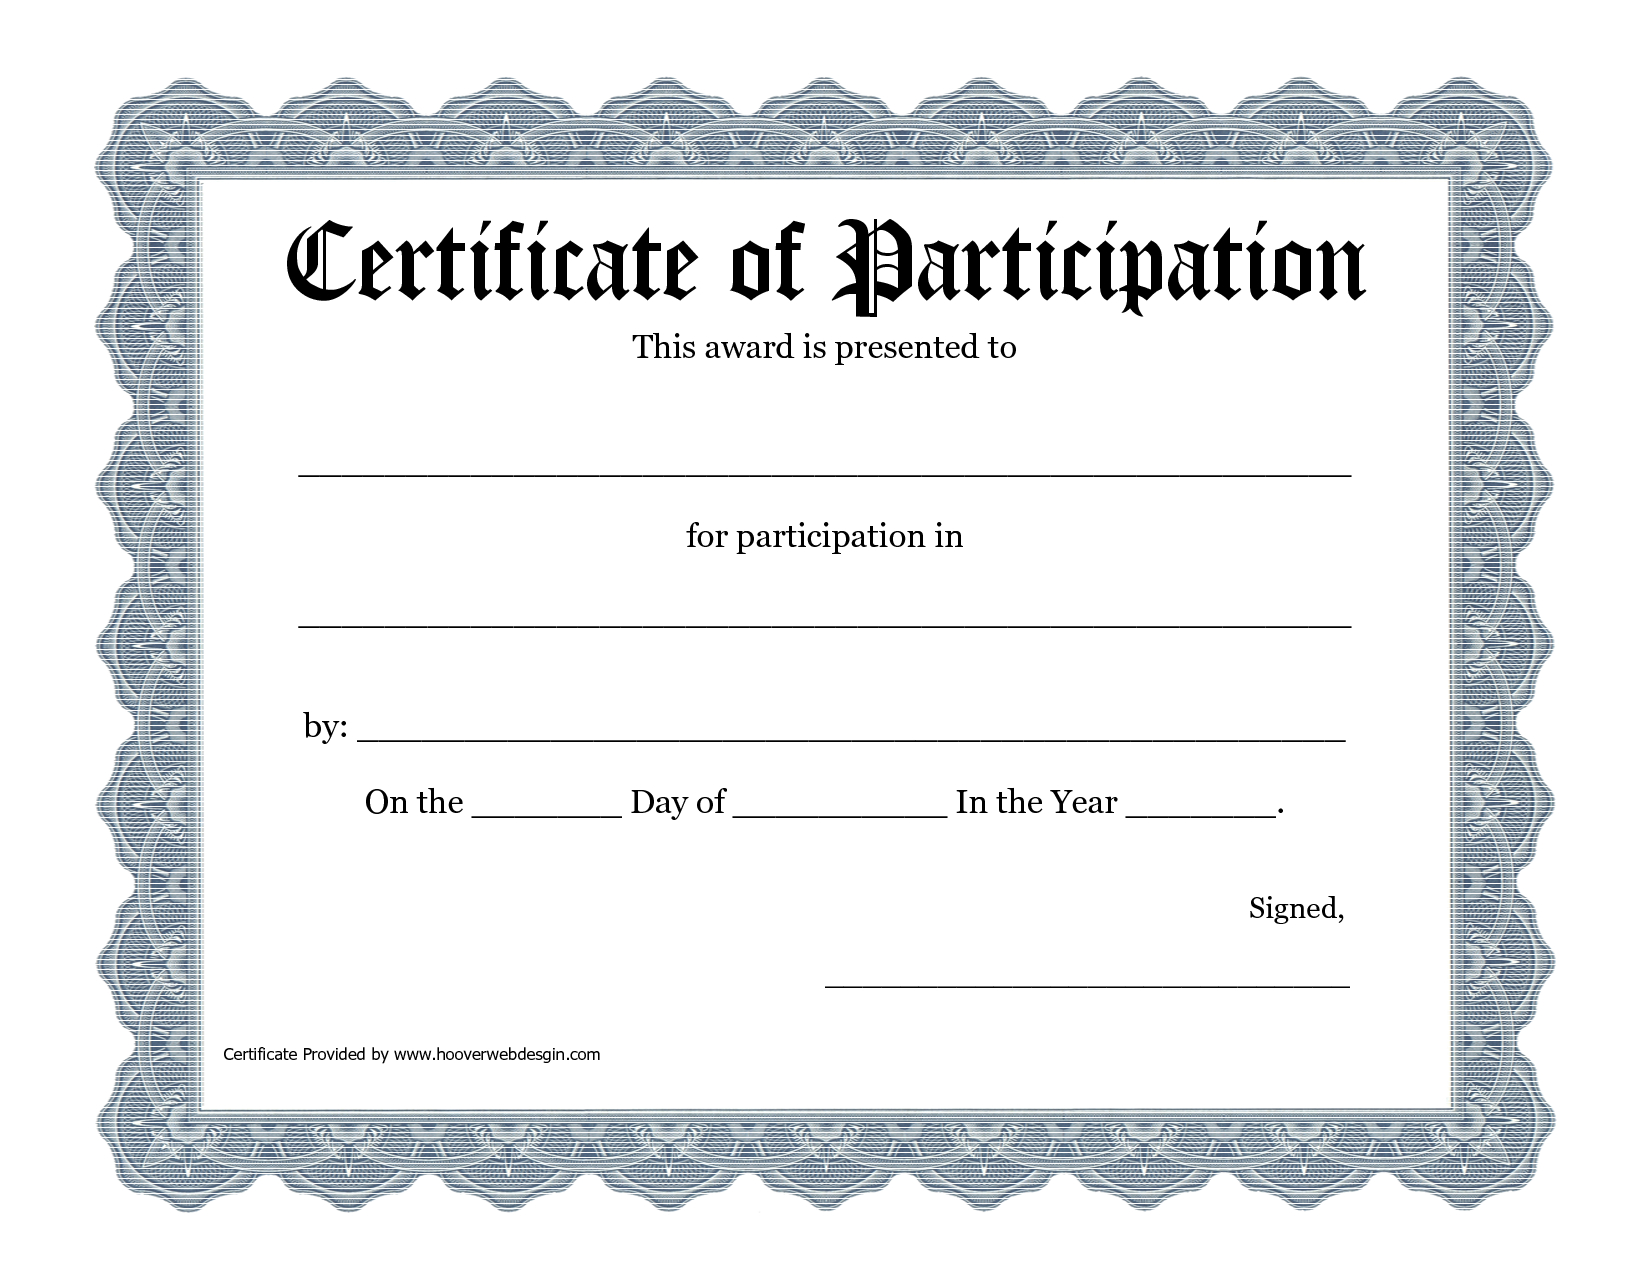 Free Printable Award Certificate Template - Bing Images | 2016 Art - Sports Certificate Templates Free Printable